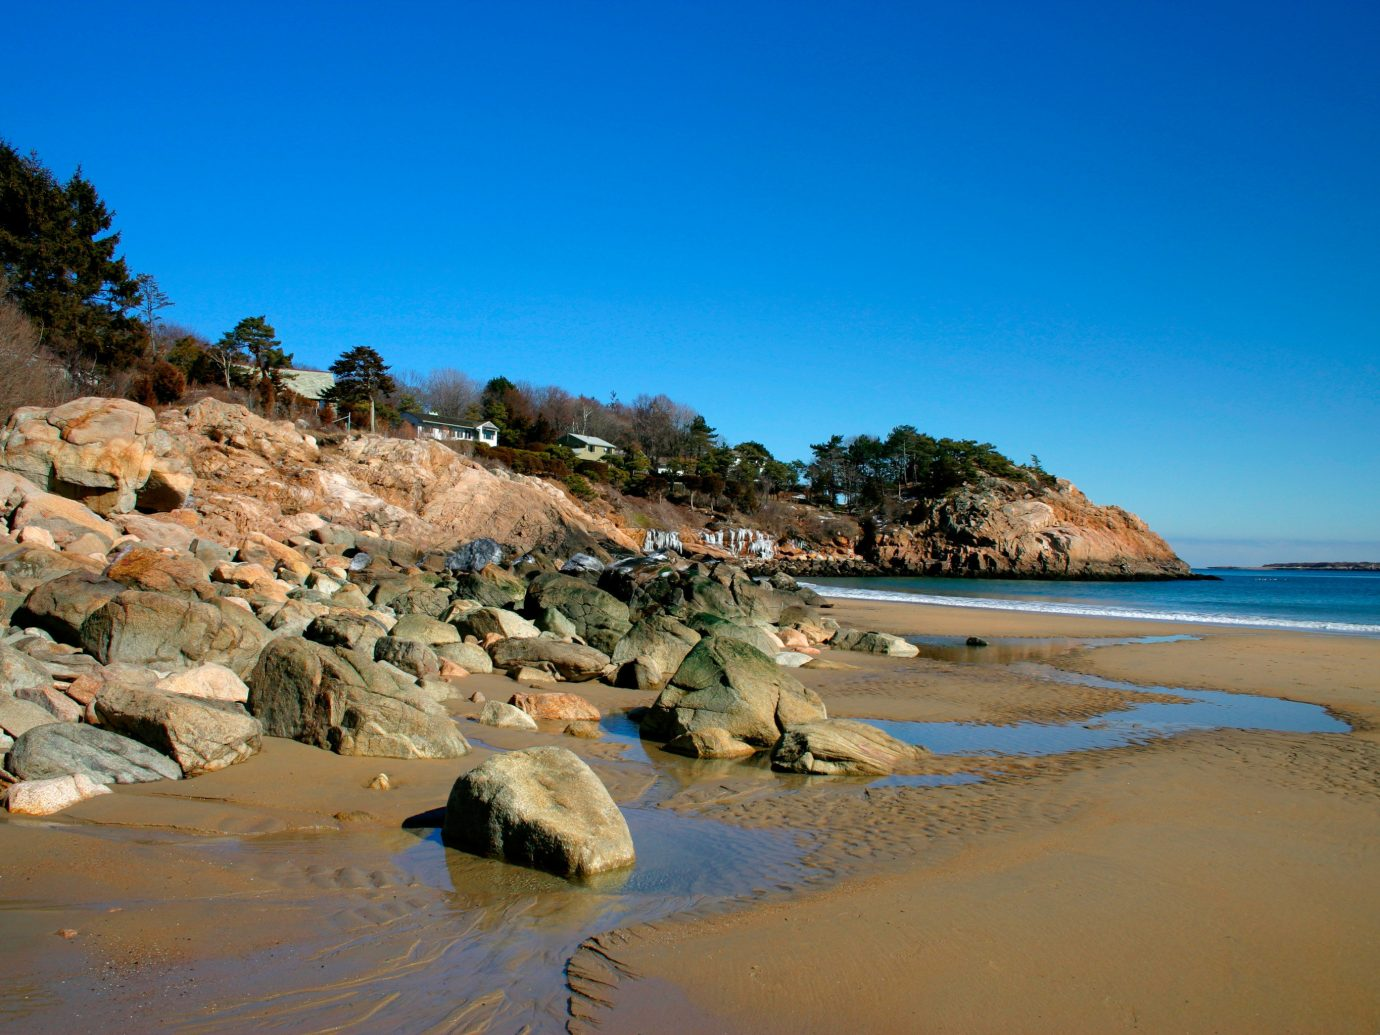 sky water outdoor Nature Beach shore Sea body of water Coast natural environment Ocean vacation sand rock bay landscape cape material cove wave